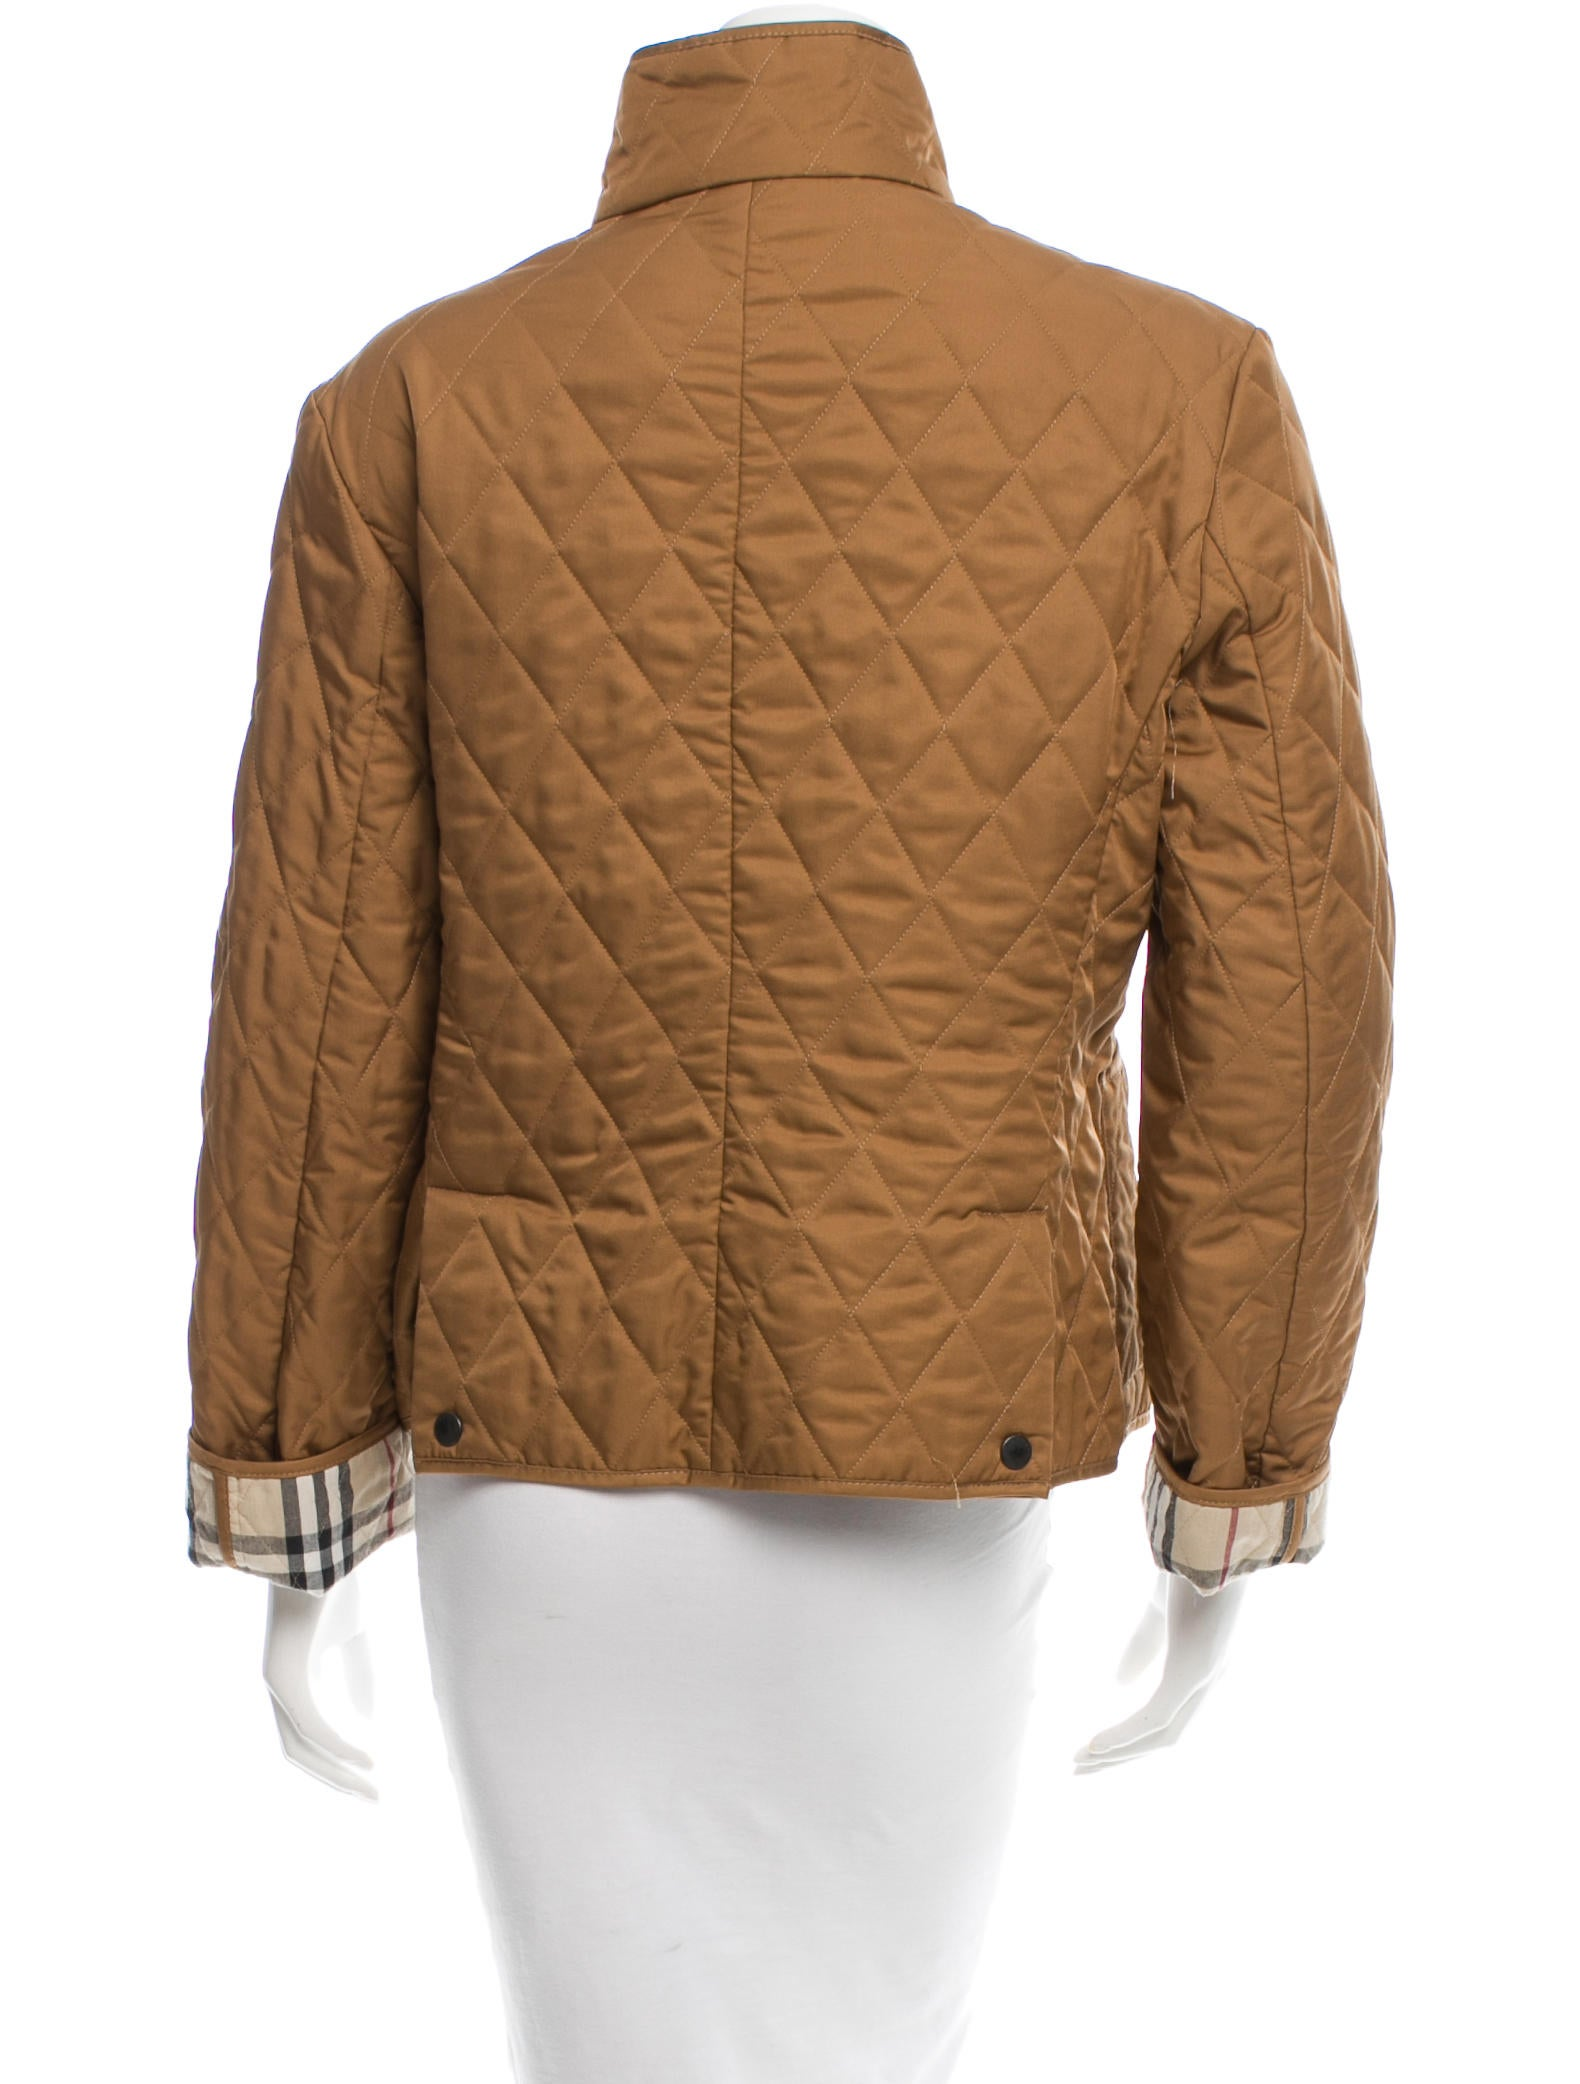 Burberry Lightweight Quilted Jacket Clothing Bur46972